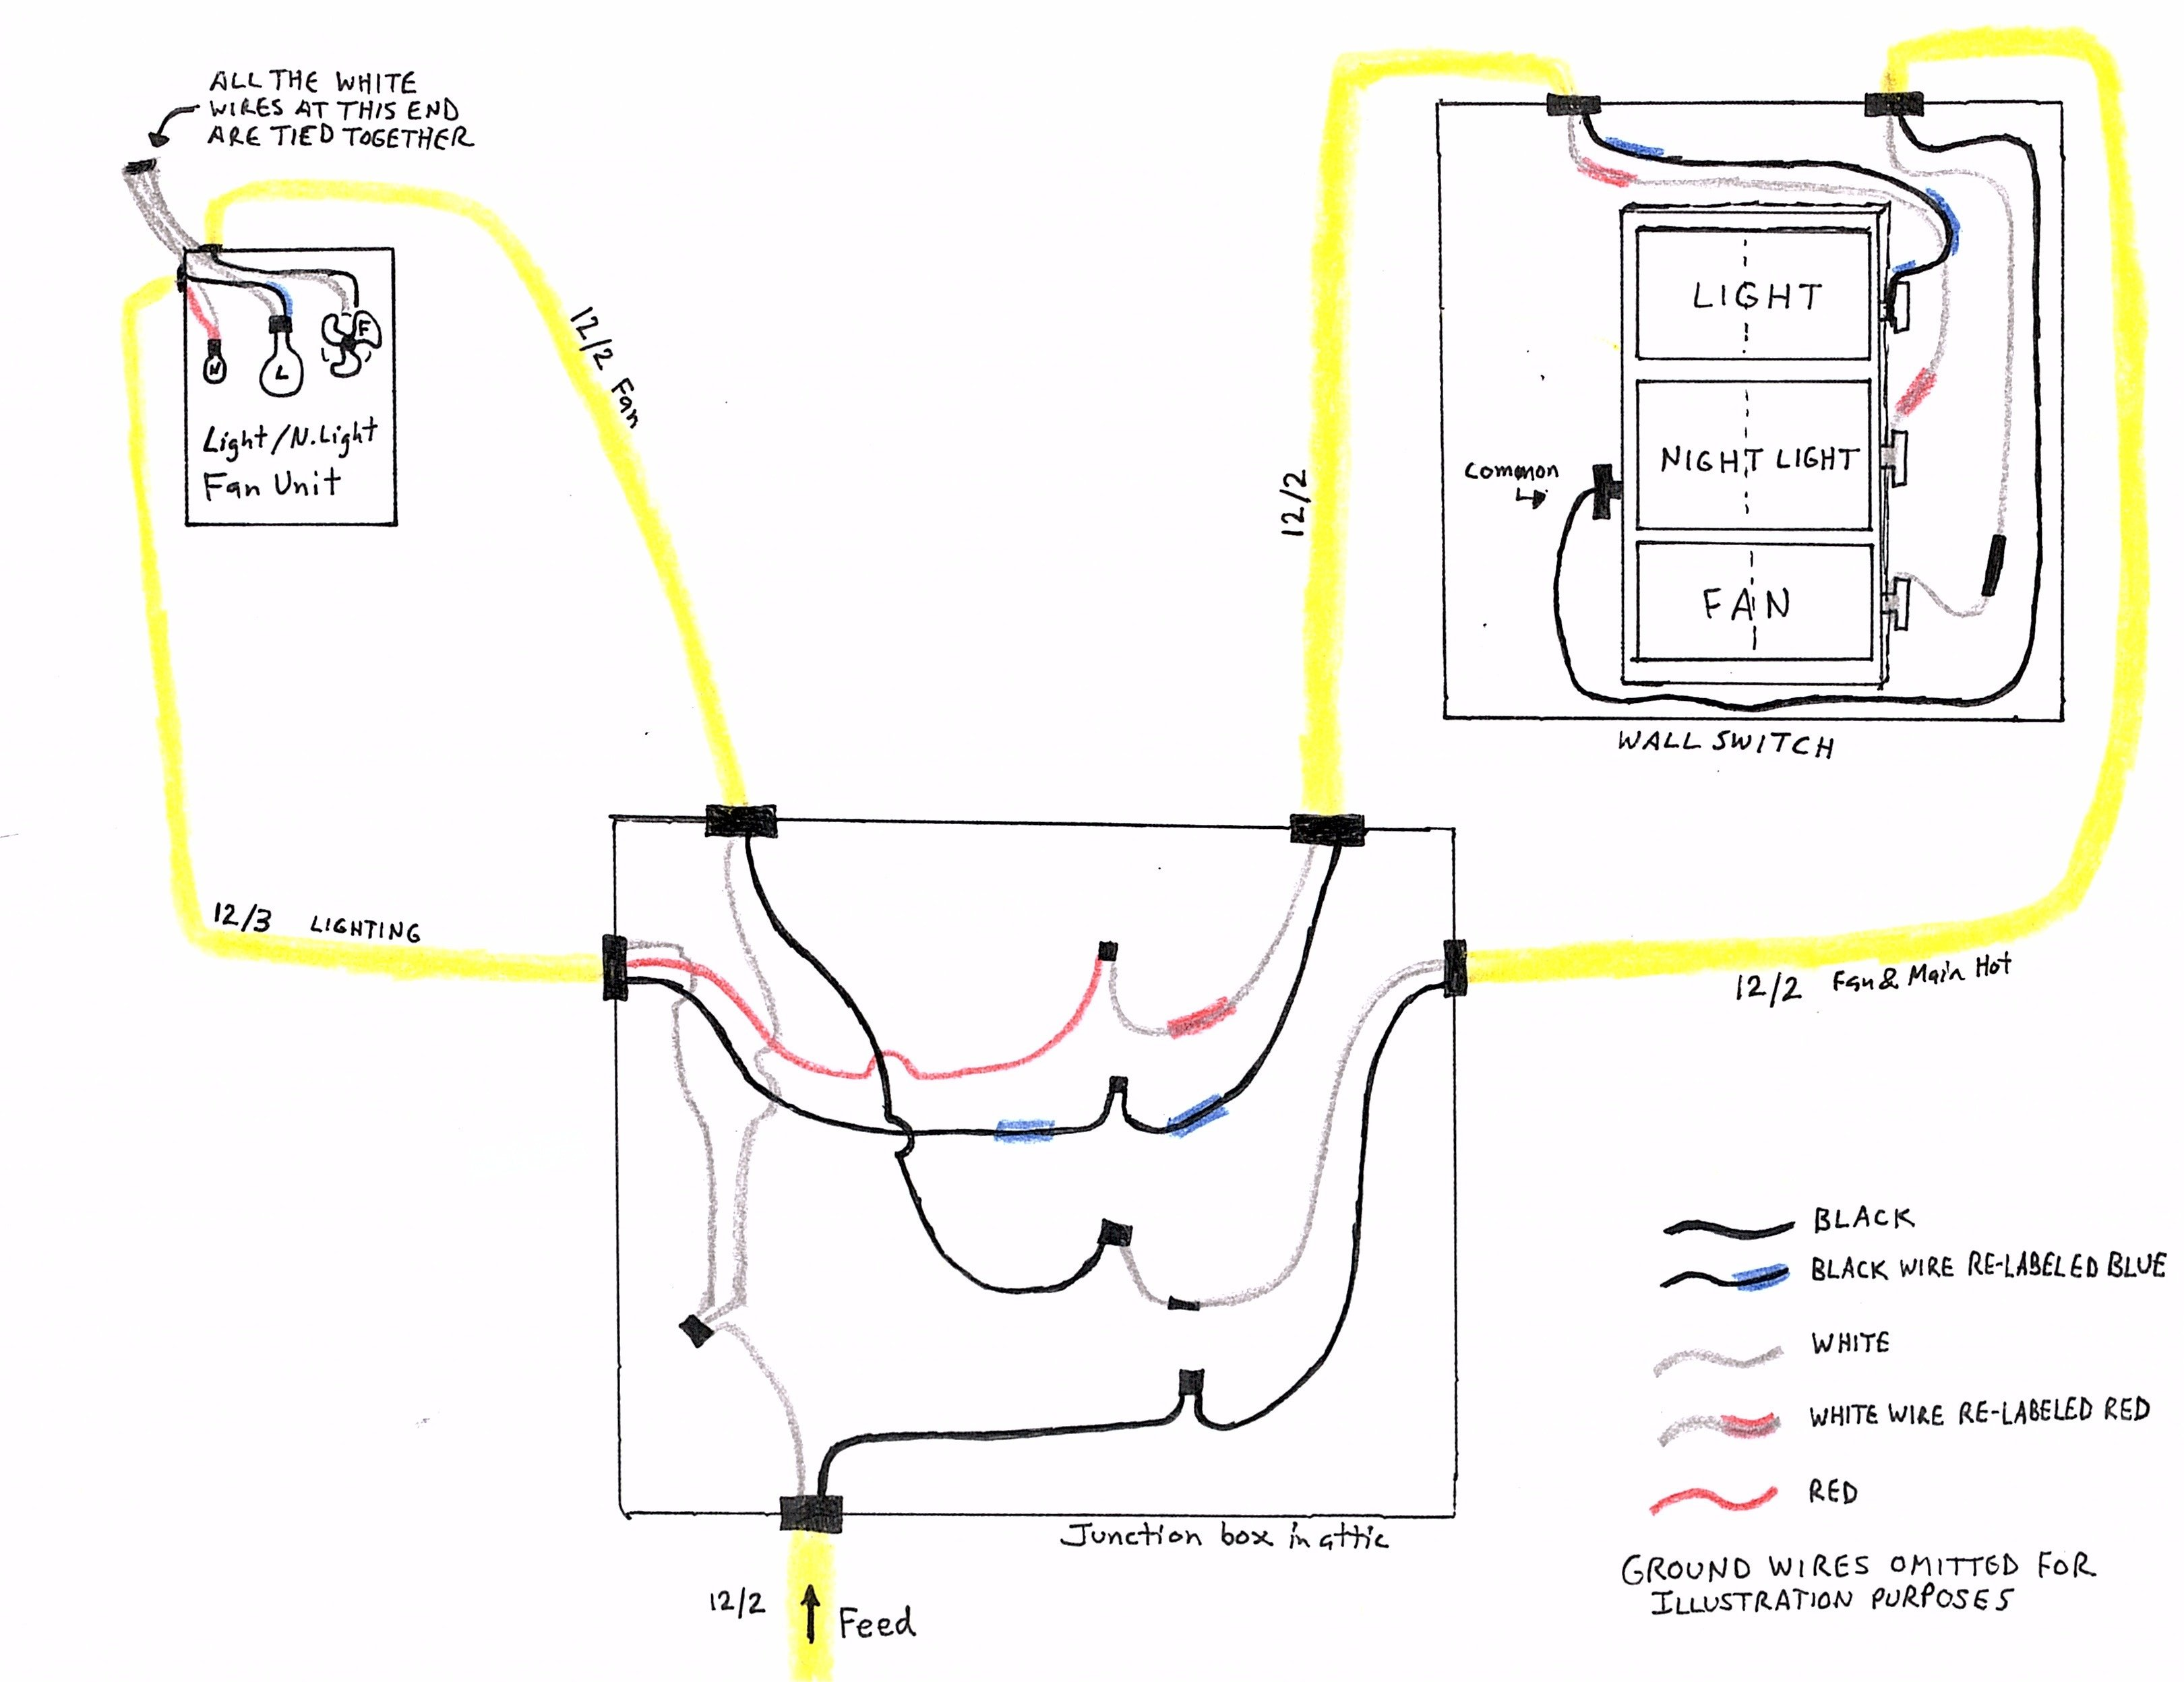 bathroom wiring diagram i re wired my home s    bathroom    during a renovation project  i re wired my home s    bathroom    during a renovation project